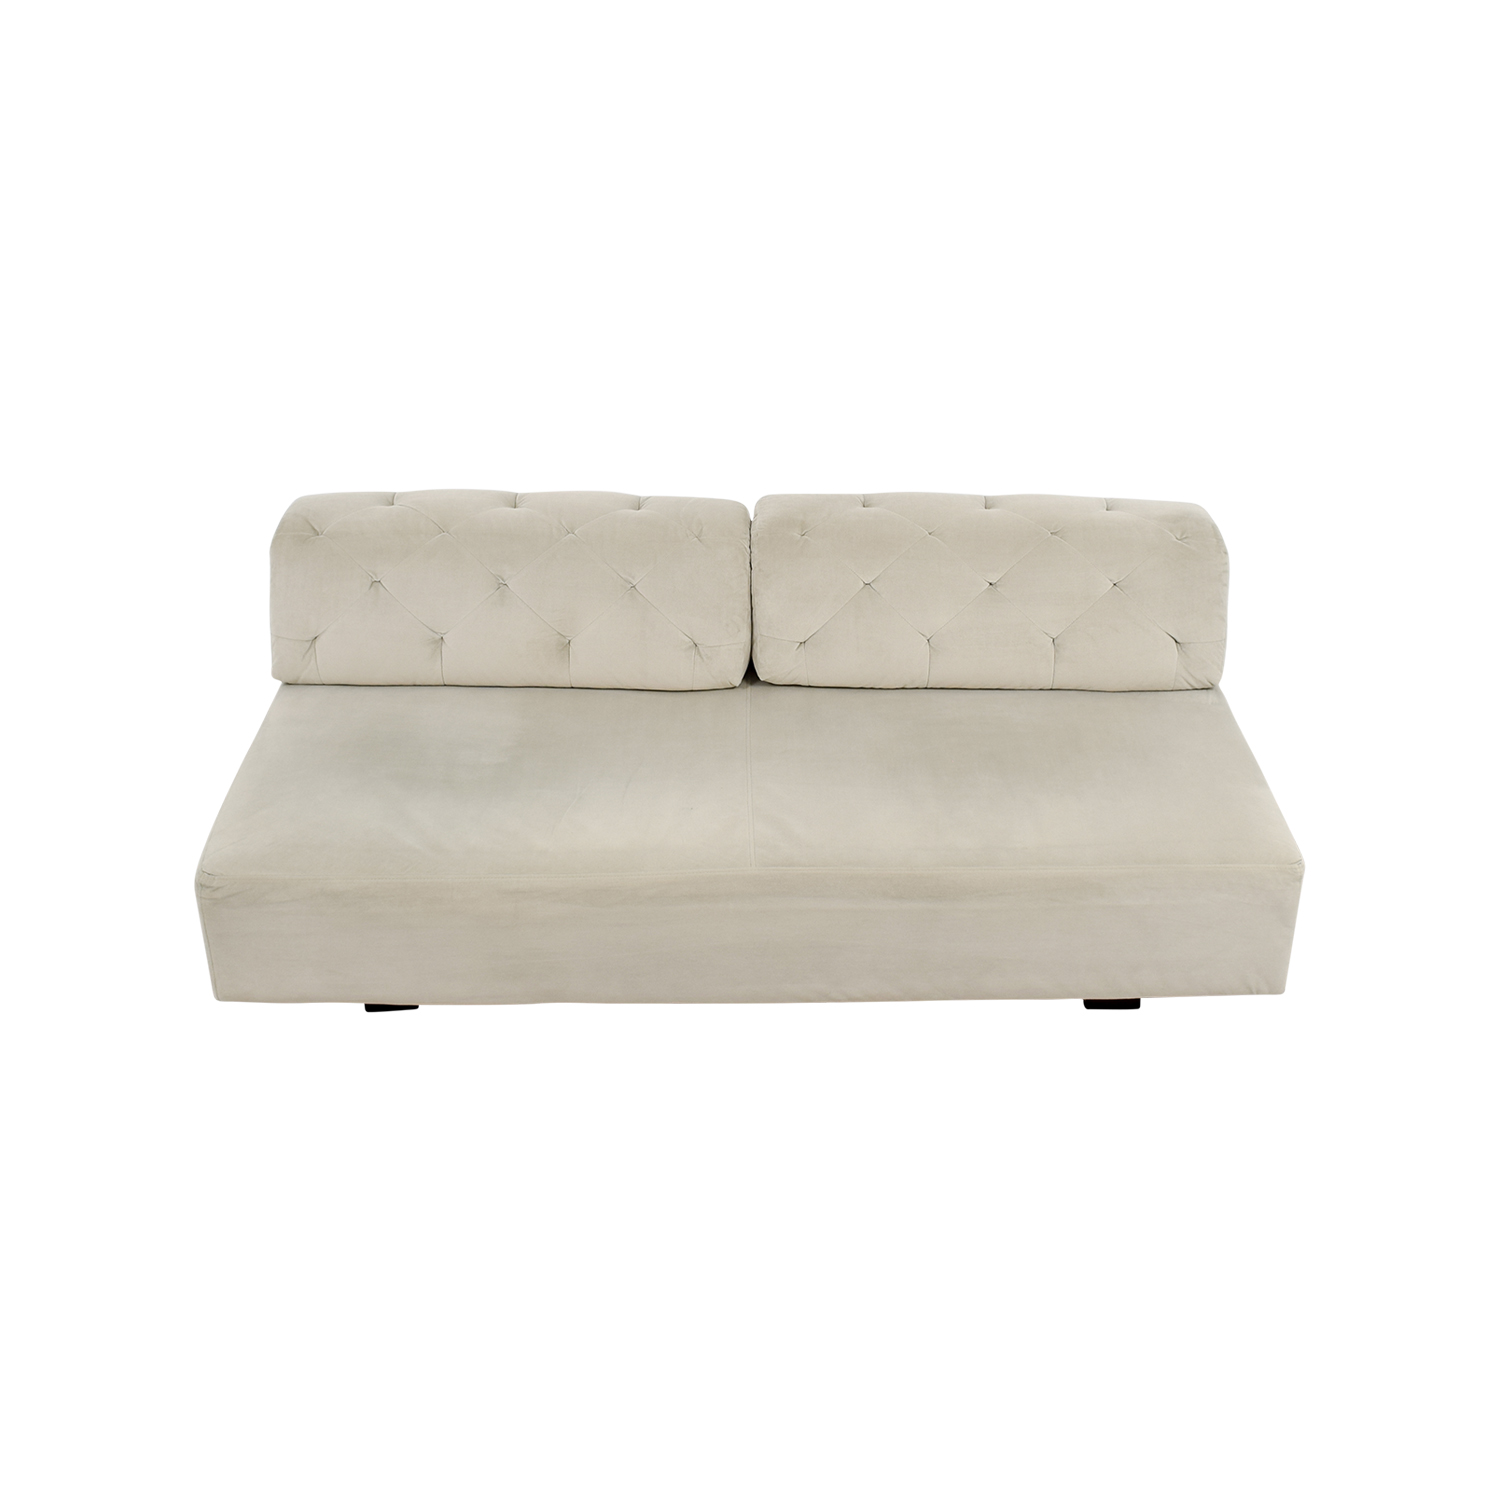 West Elm Tillary Beige Tufted Sofa / Classic Sofas